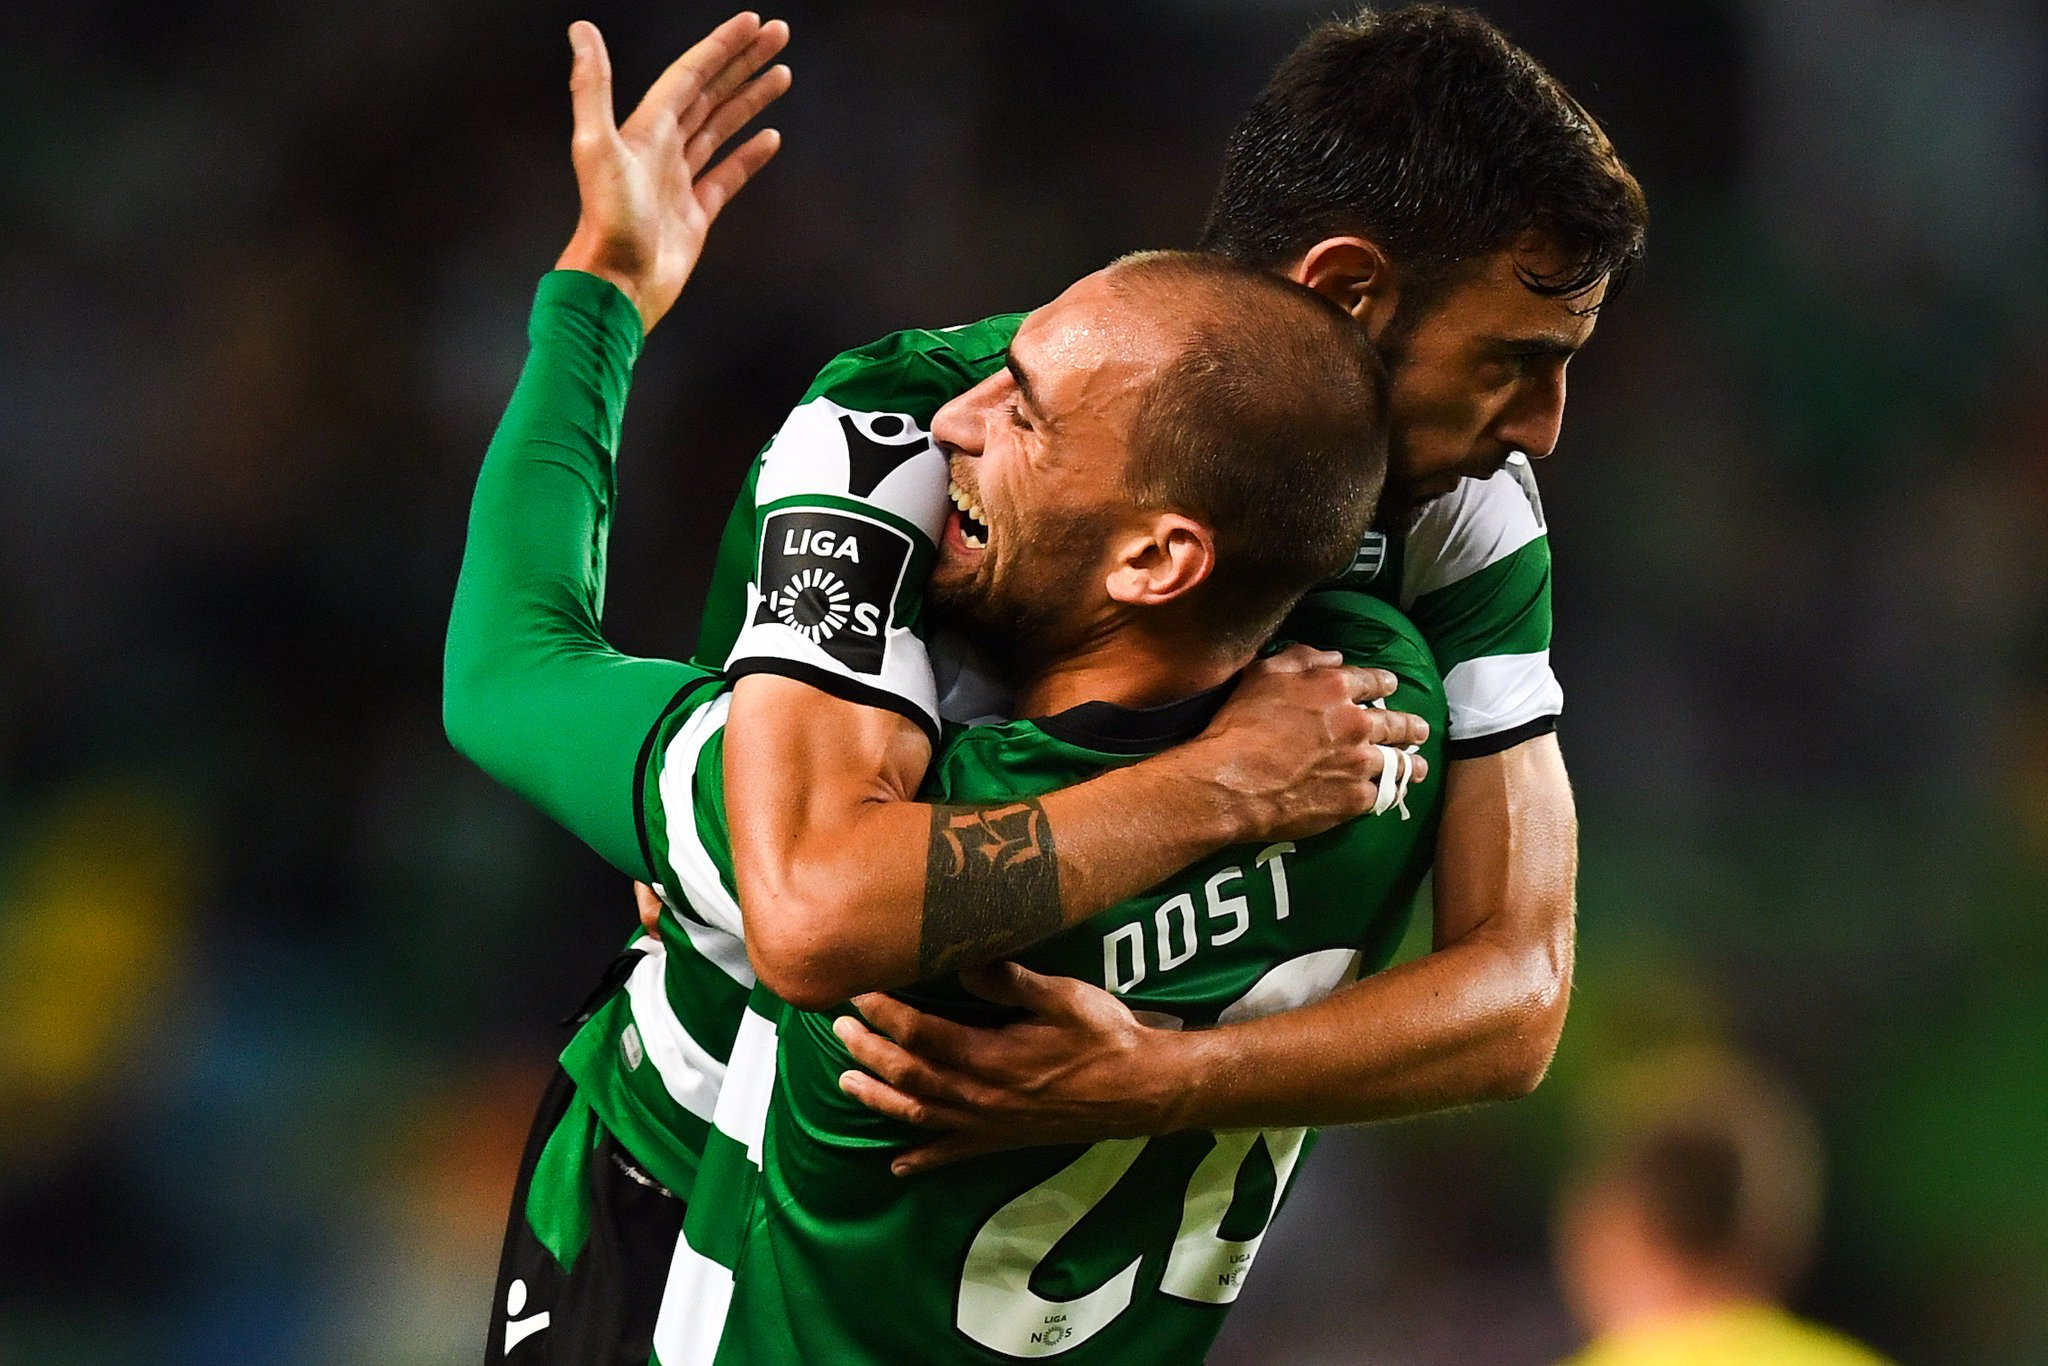 Bruno Fernandes + Bas Dost = ⚽️  Key men for Sporting CP this season? #UCL https://t.co/qfsskUnMKl